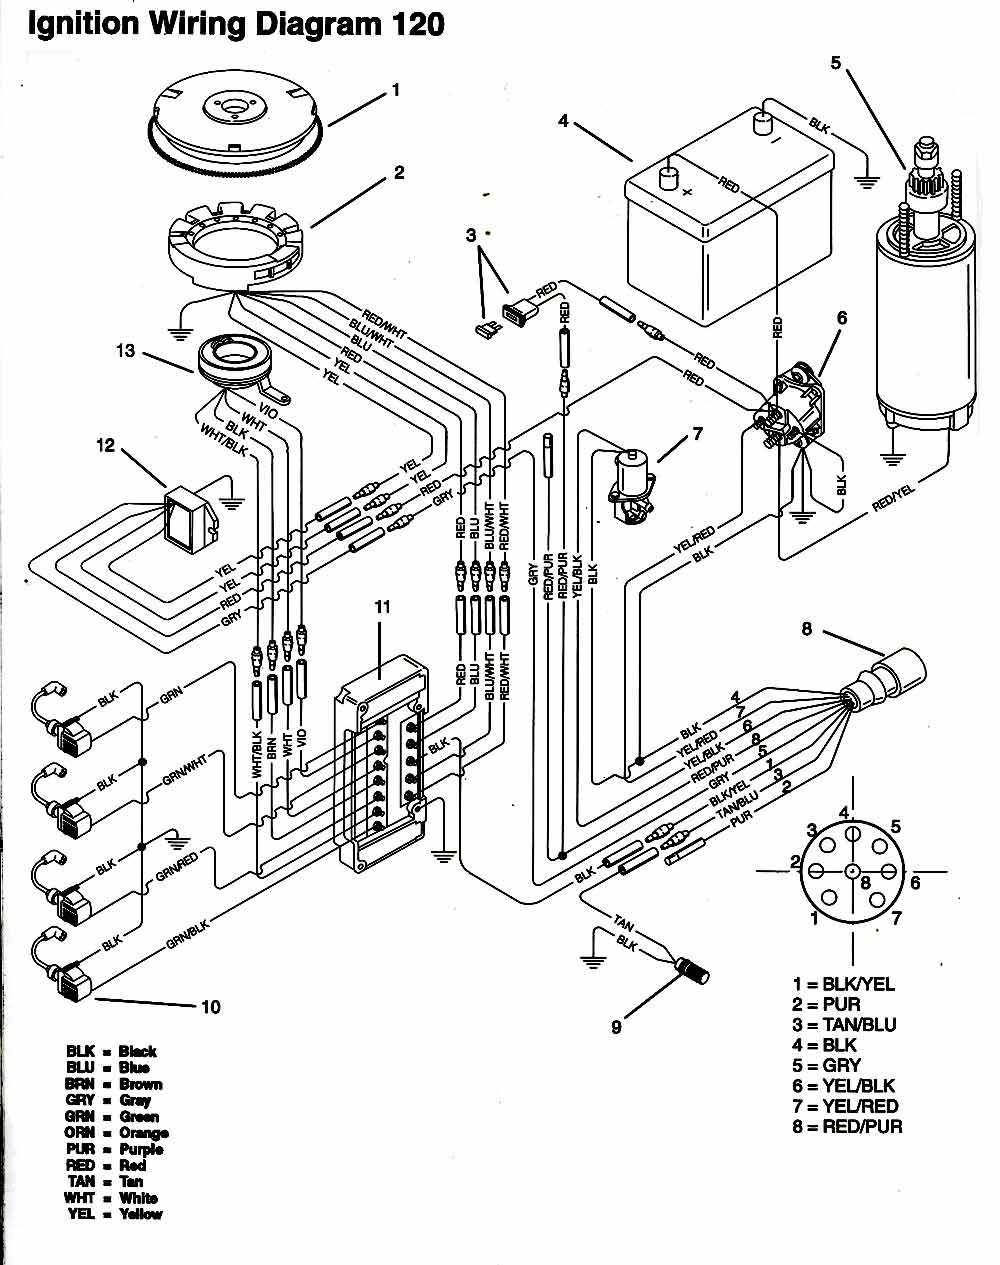 1995 mercury outboard 115 hp wiring diagram little wiring diagrams 110 hp mercury outboard diagrams mercury outboard 115 hp 2 stroke diagrams [ 1000 x 1265 Pixel ]